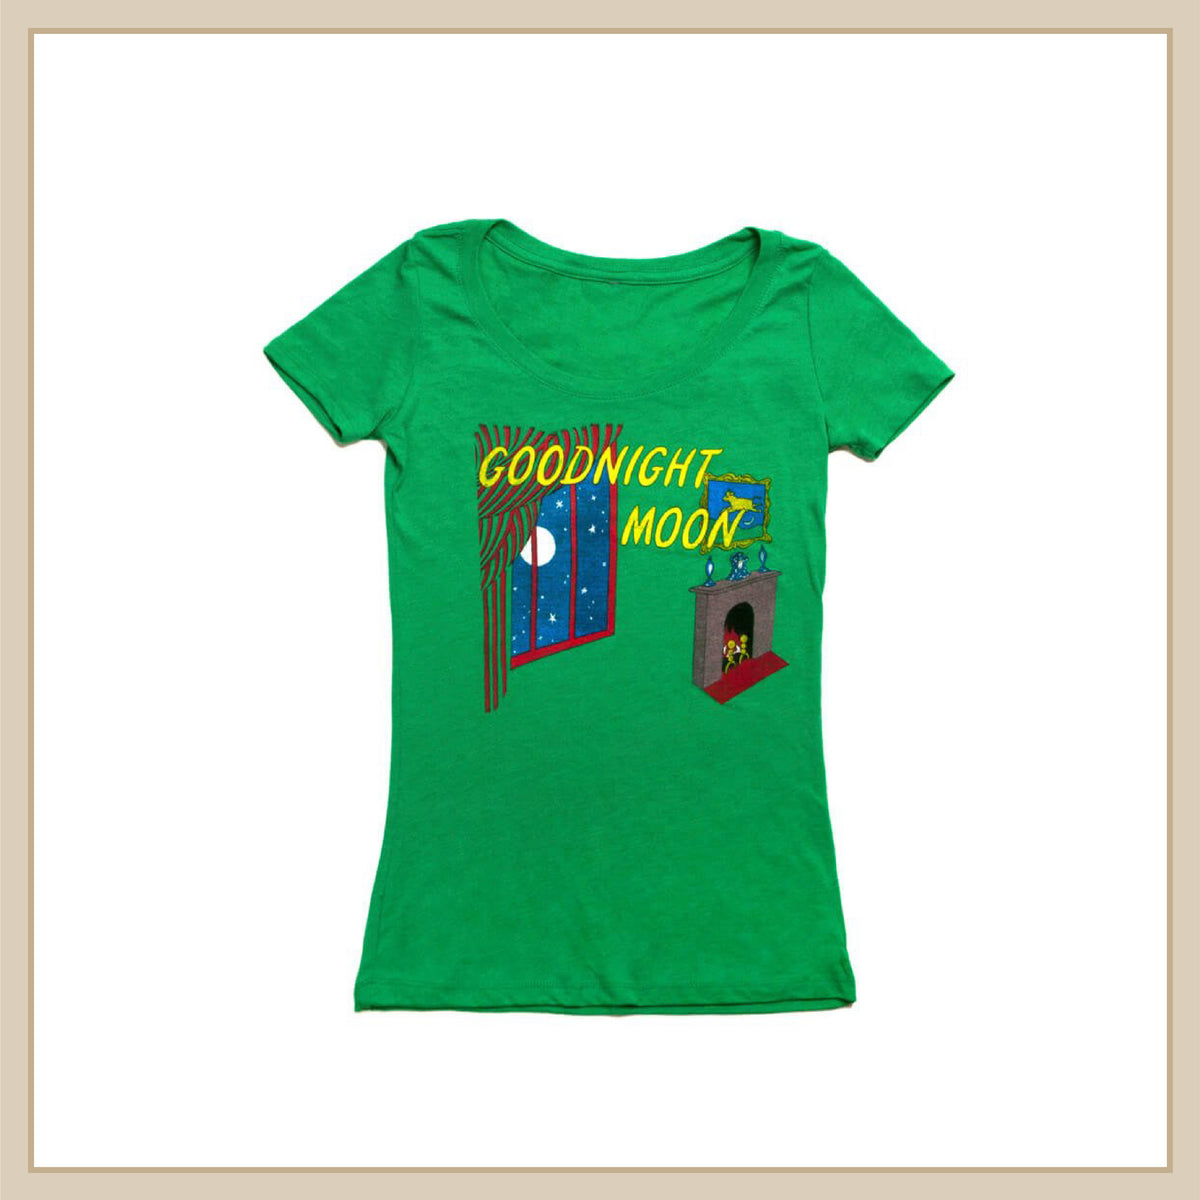 Goodnight Moon T-Shirt - Envy Paint and Design